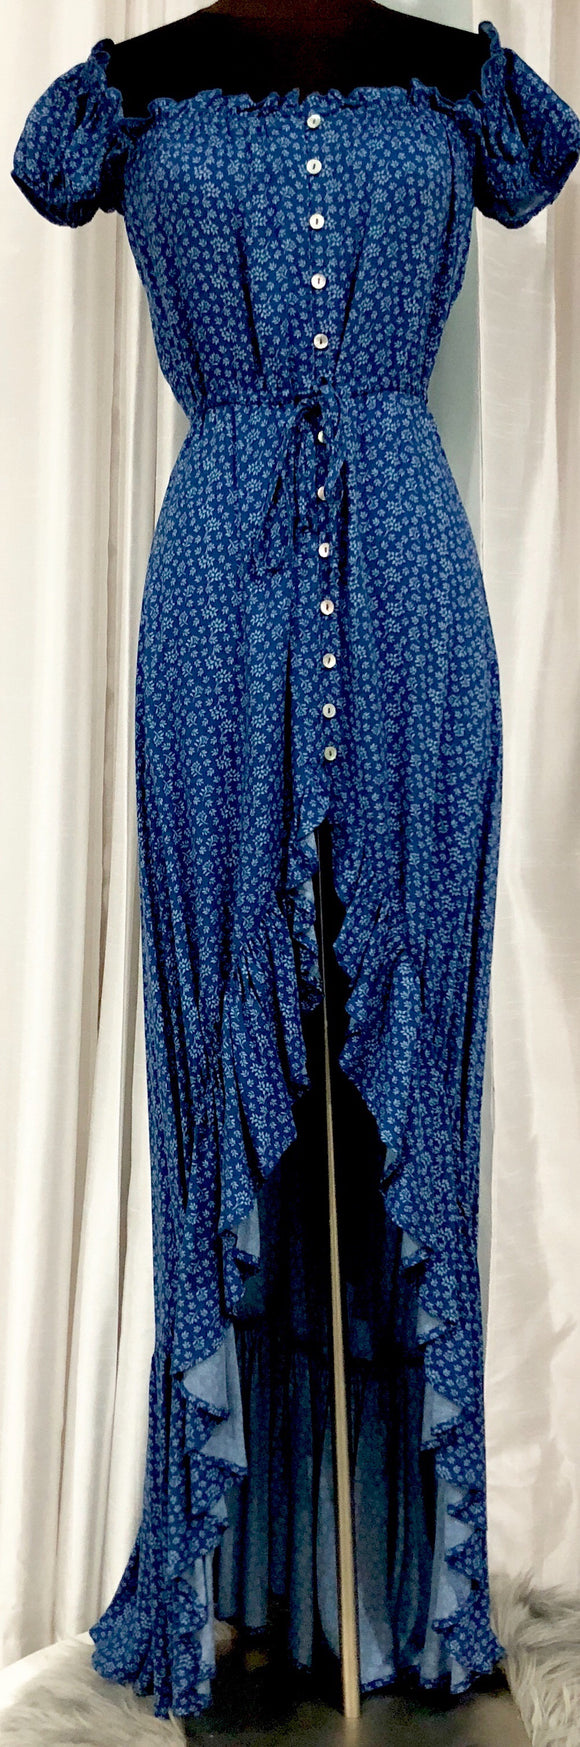 BOUTIQUE Blue Floral Button Up High-Low Maxi Dress Size S